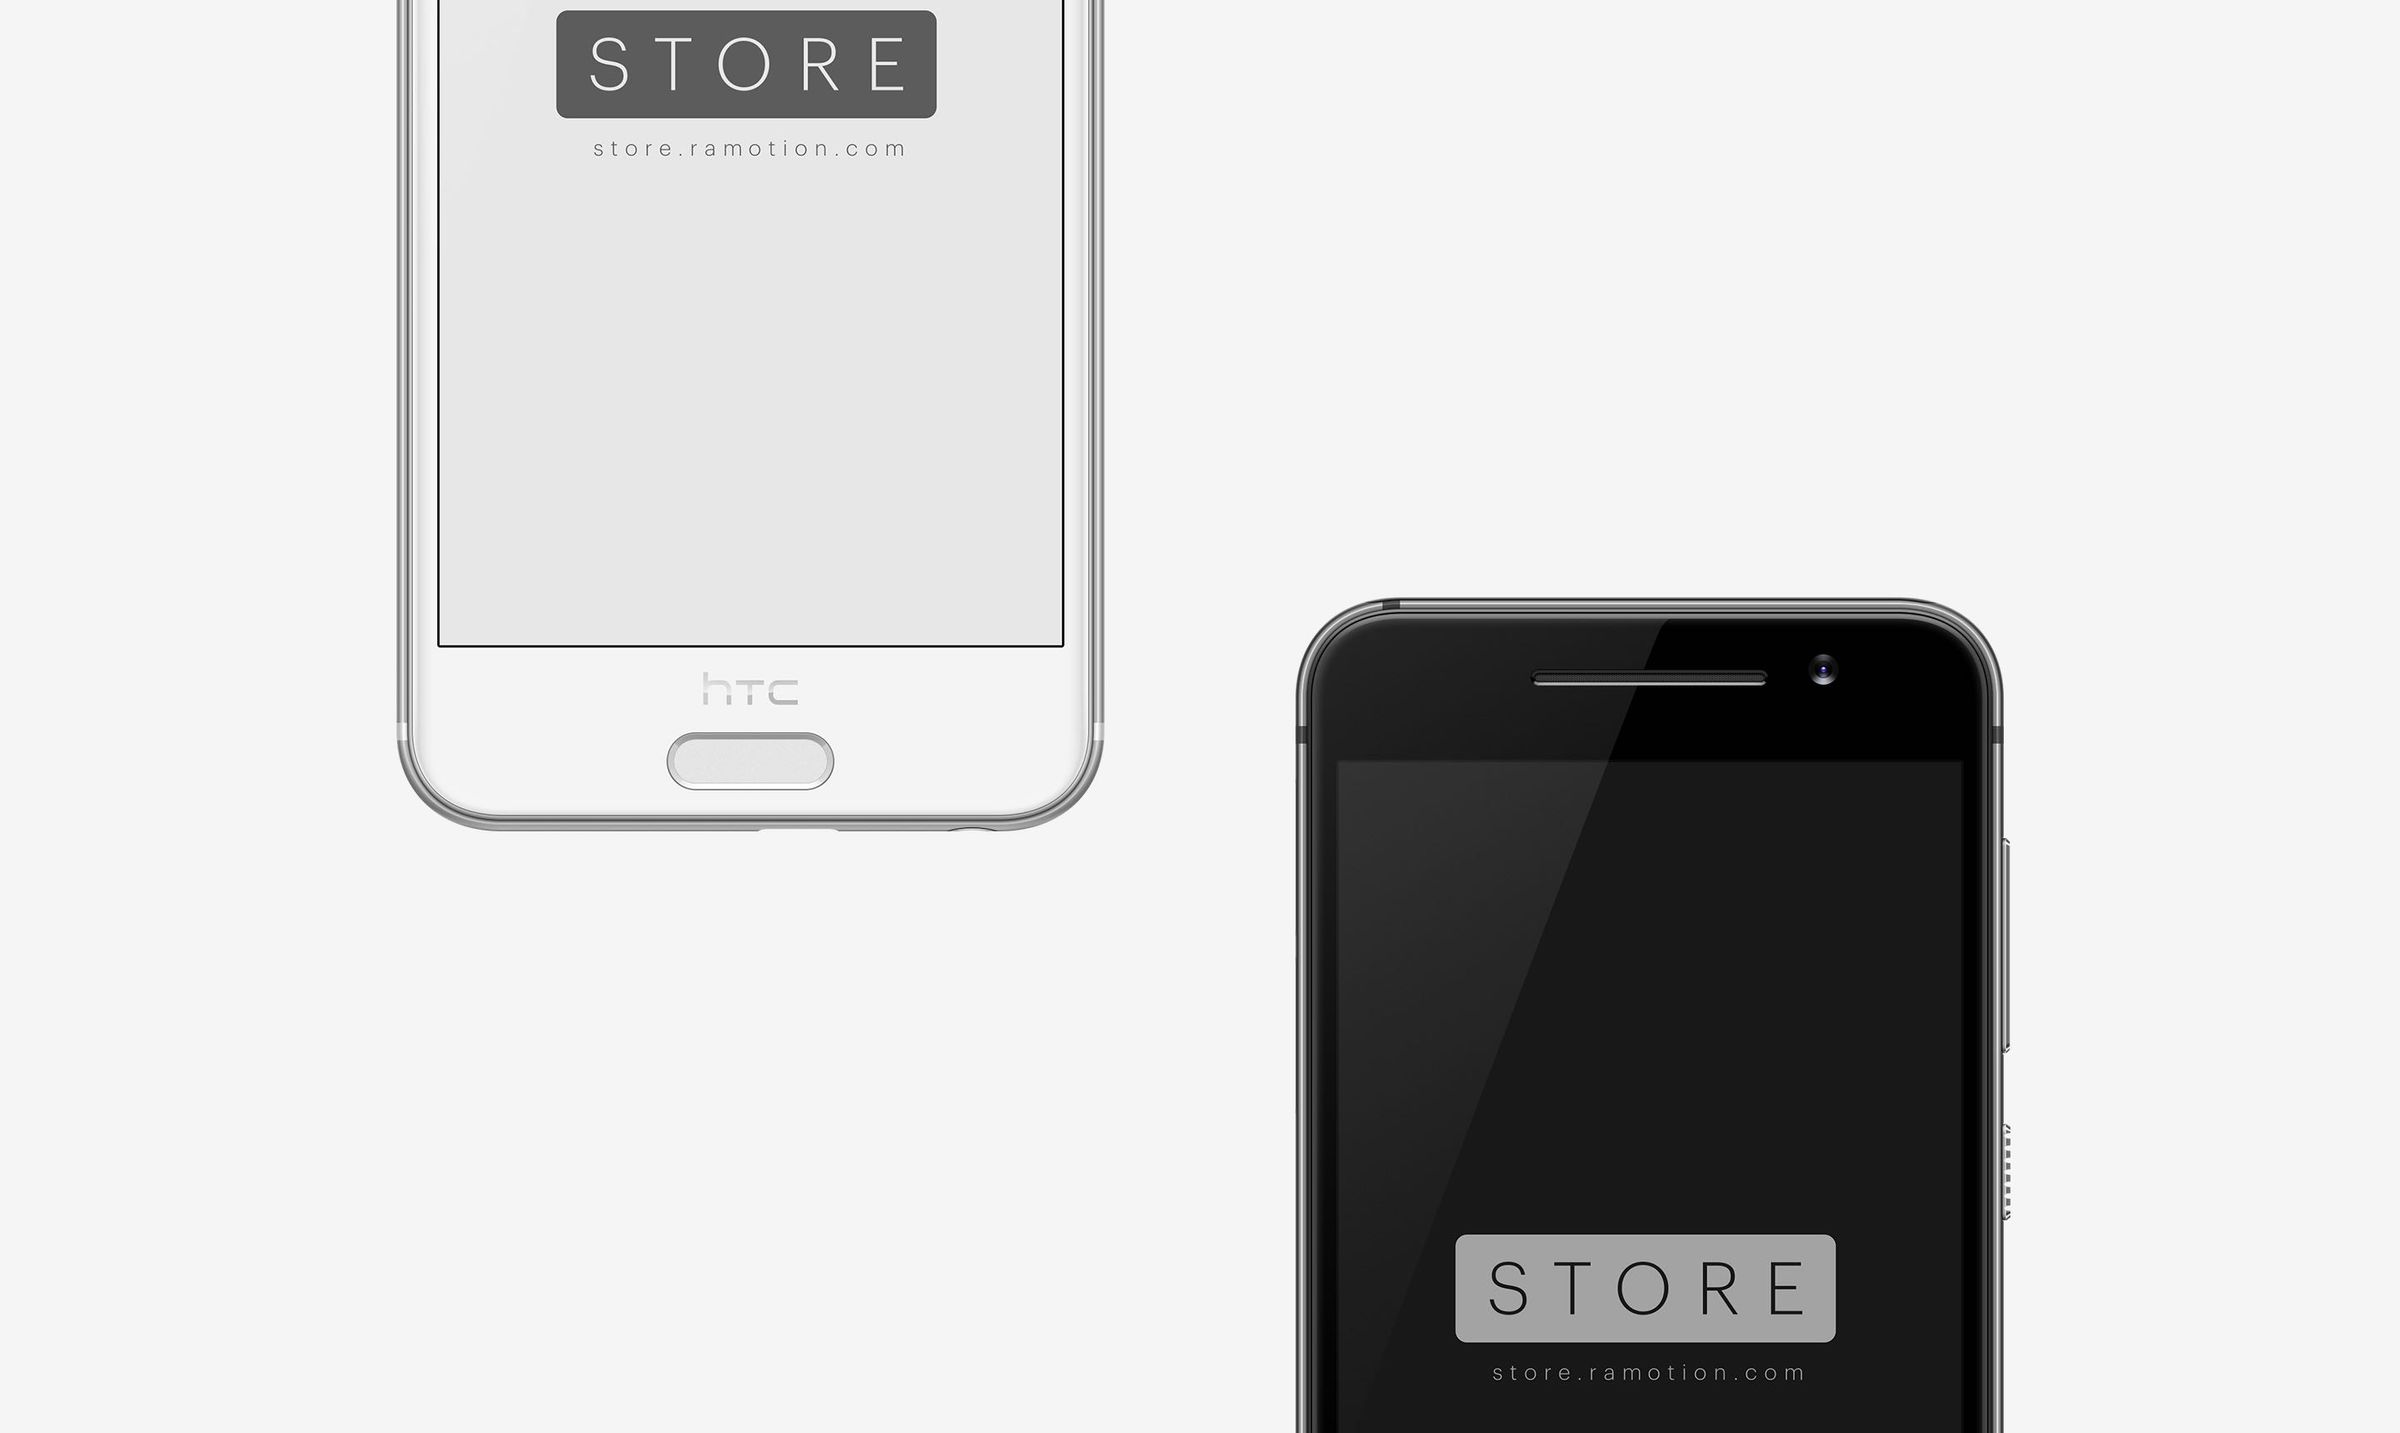 htc one frontal mockup